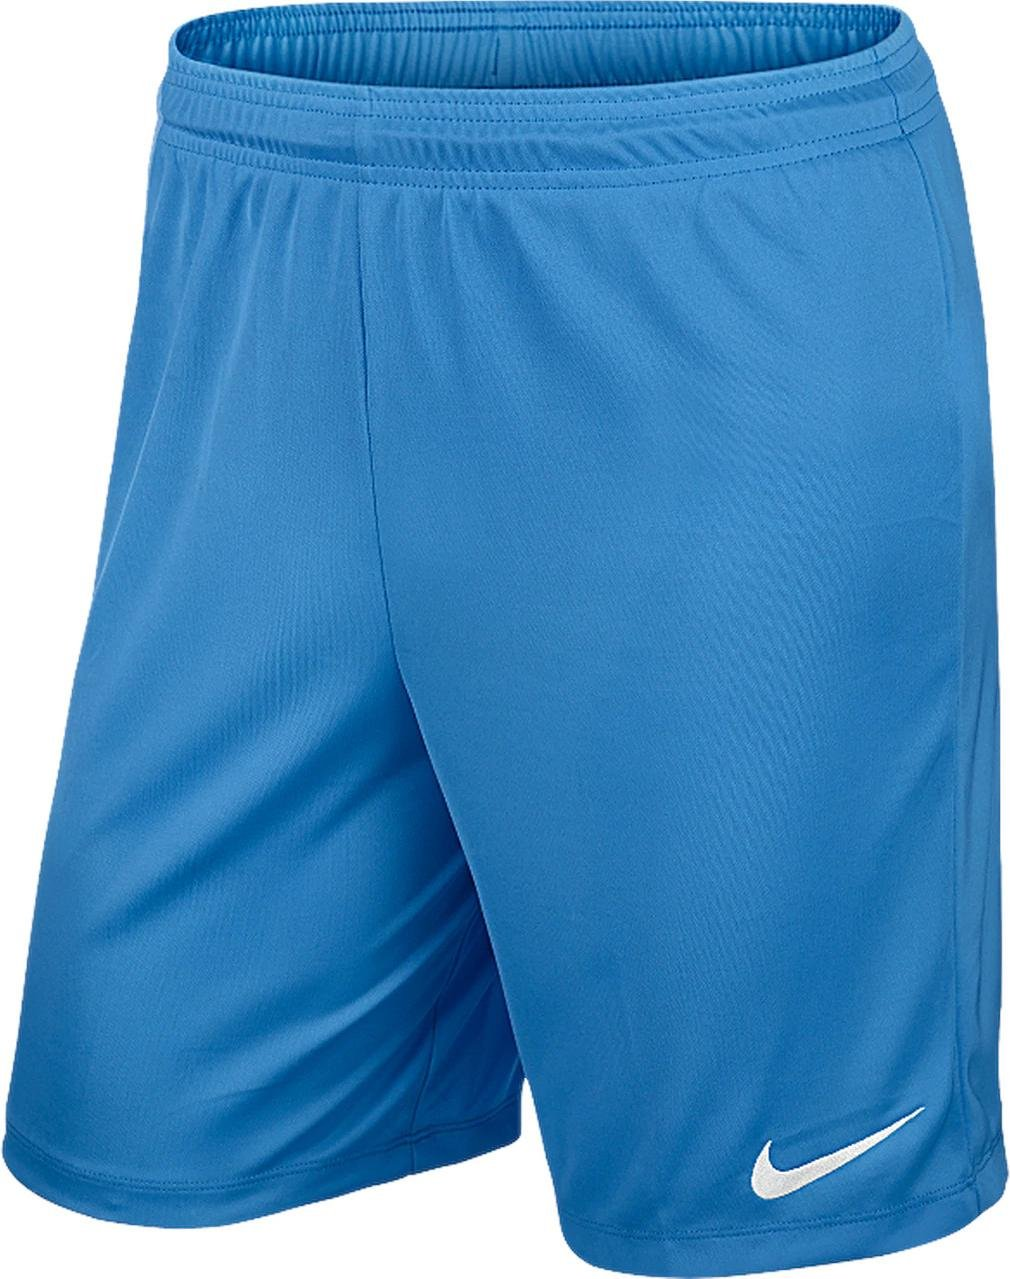 Shorts Nike Park II kids